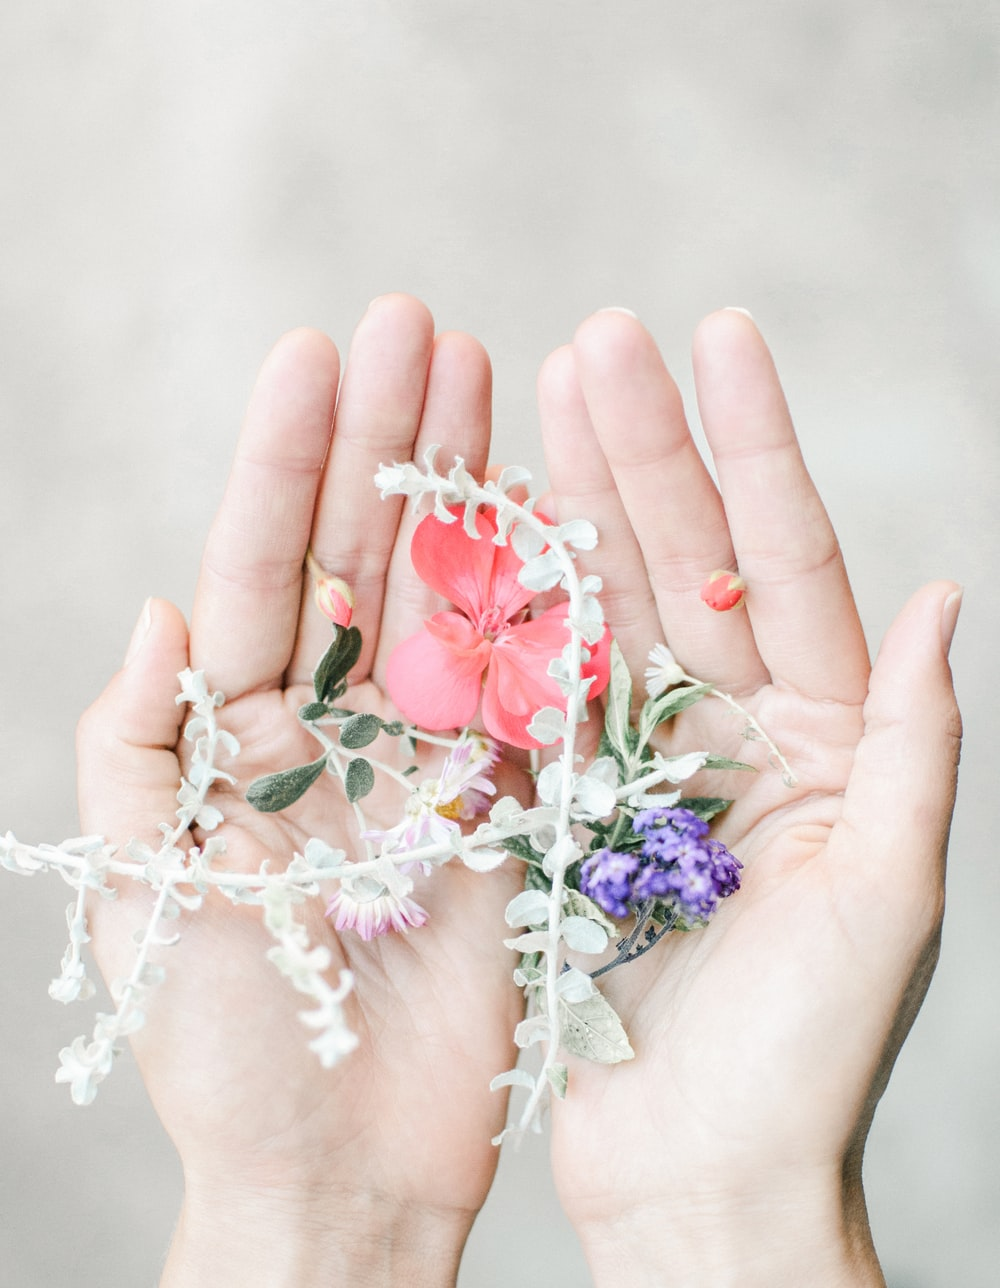 person holding pink and white flower